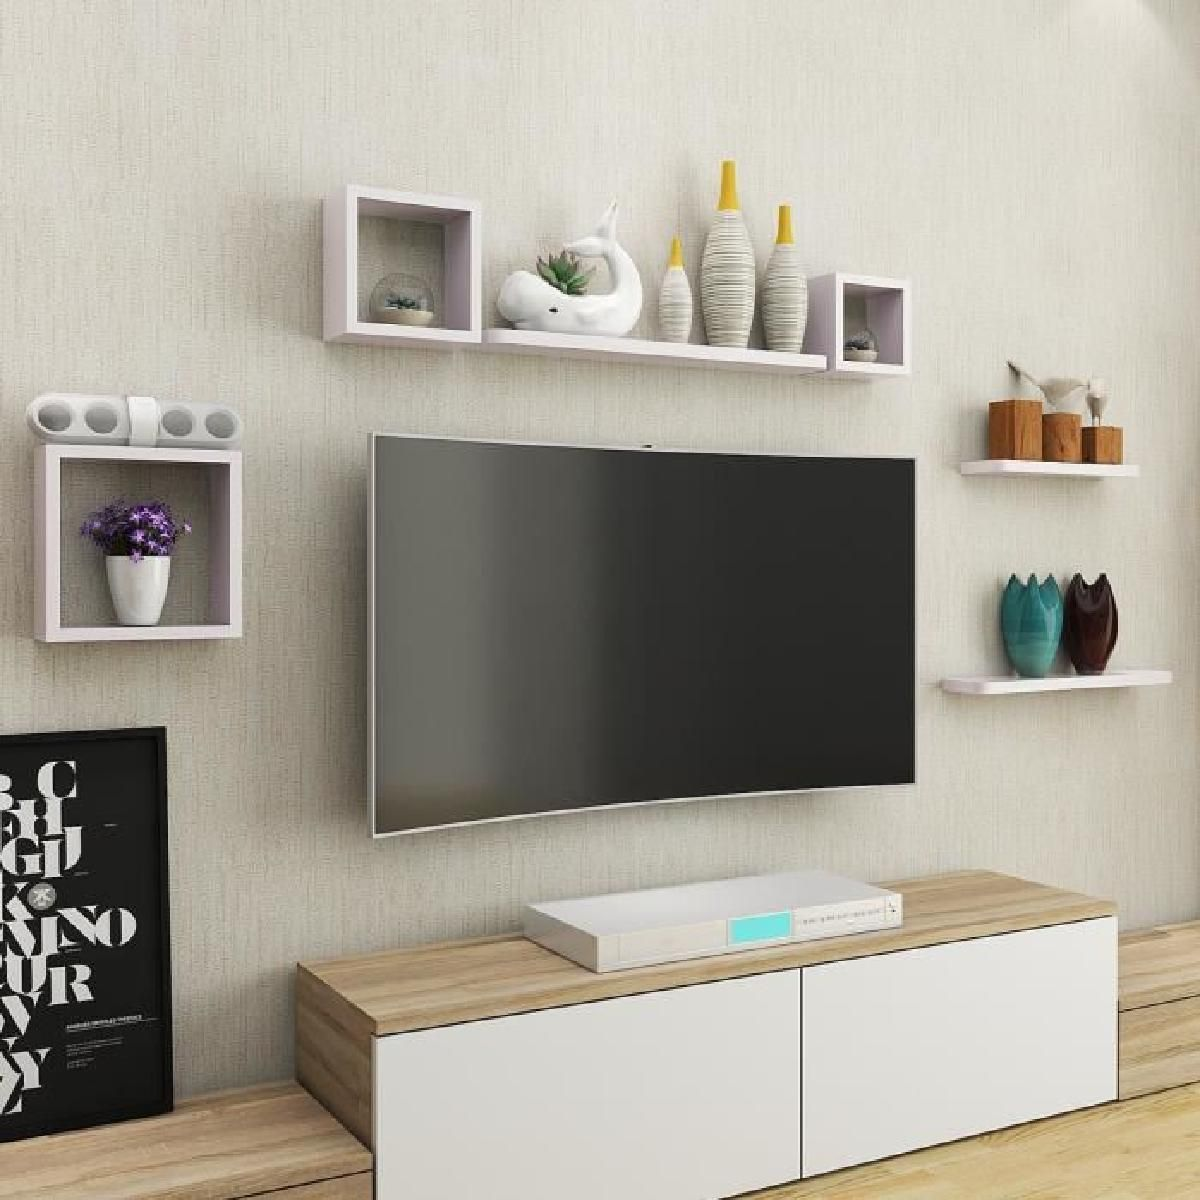 Beau Etagere Murale Salon Mounted Shelves Tv Room Design Wall Mounted Shelves